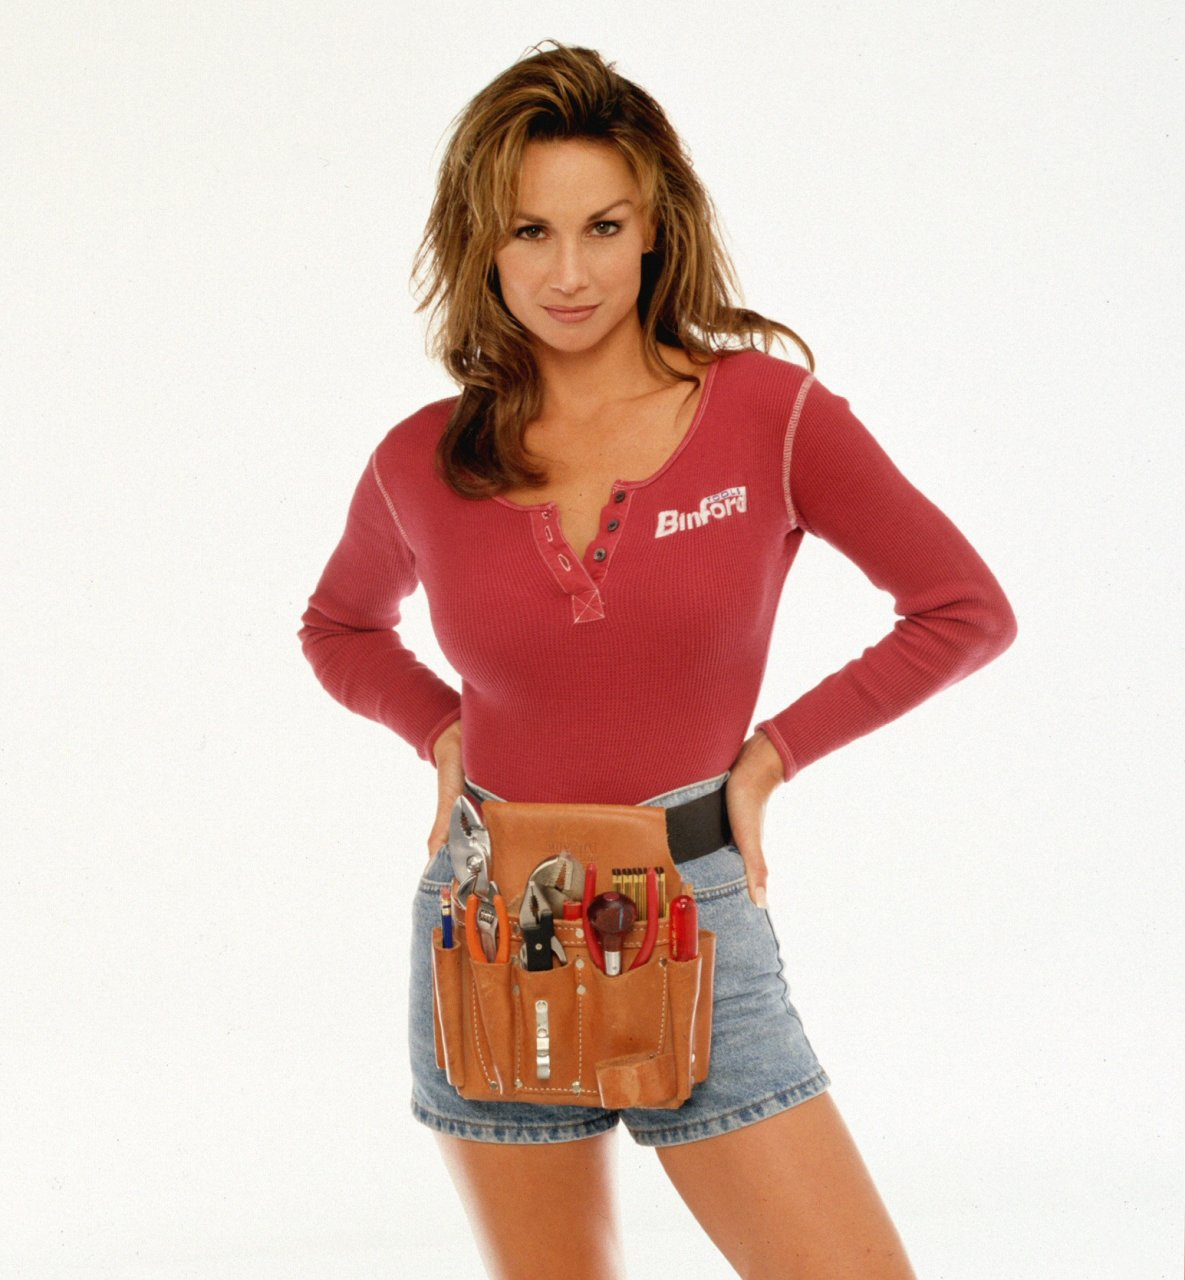 A Slice of Cheesecake: Debbe Dunning, she'll aways be ...